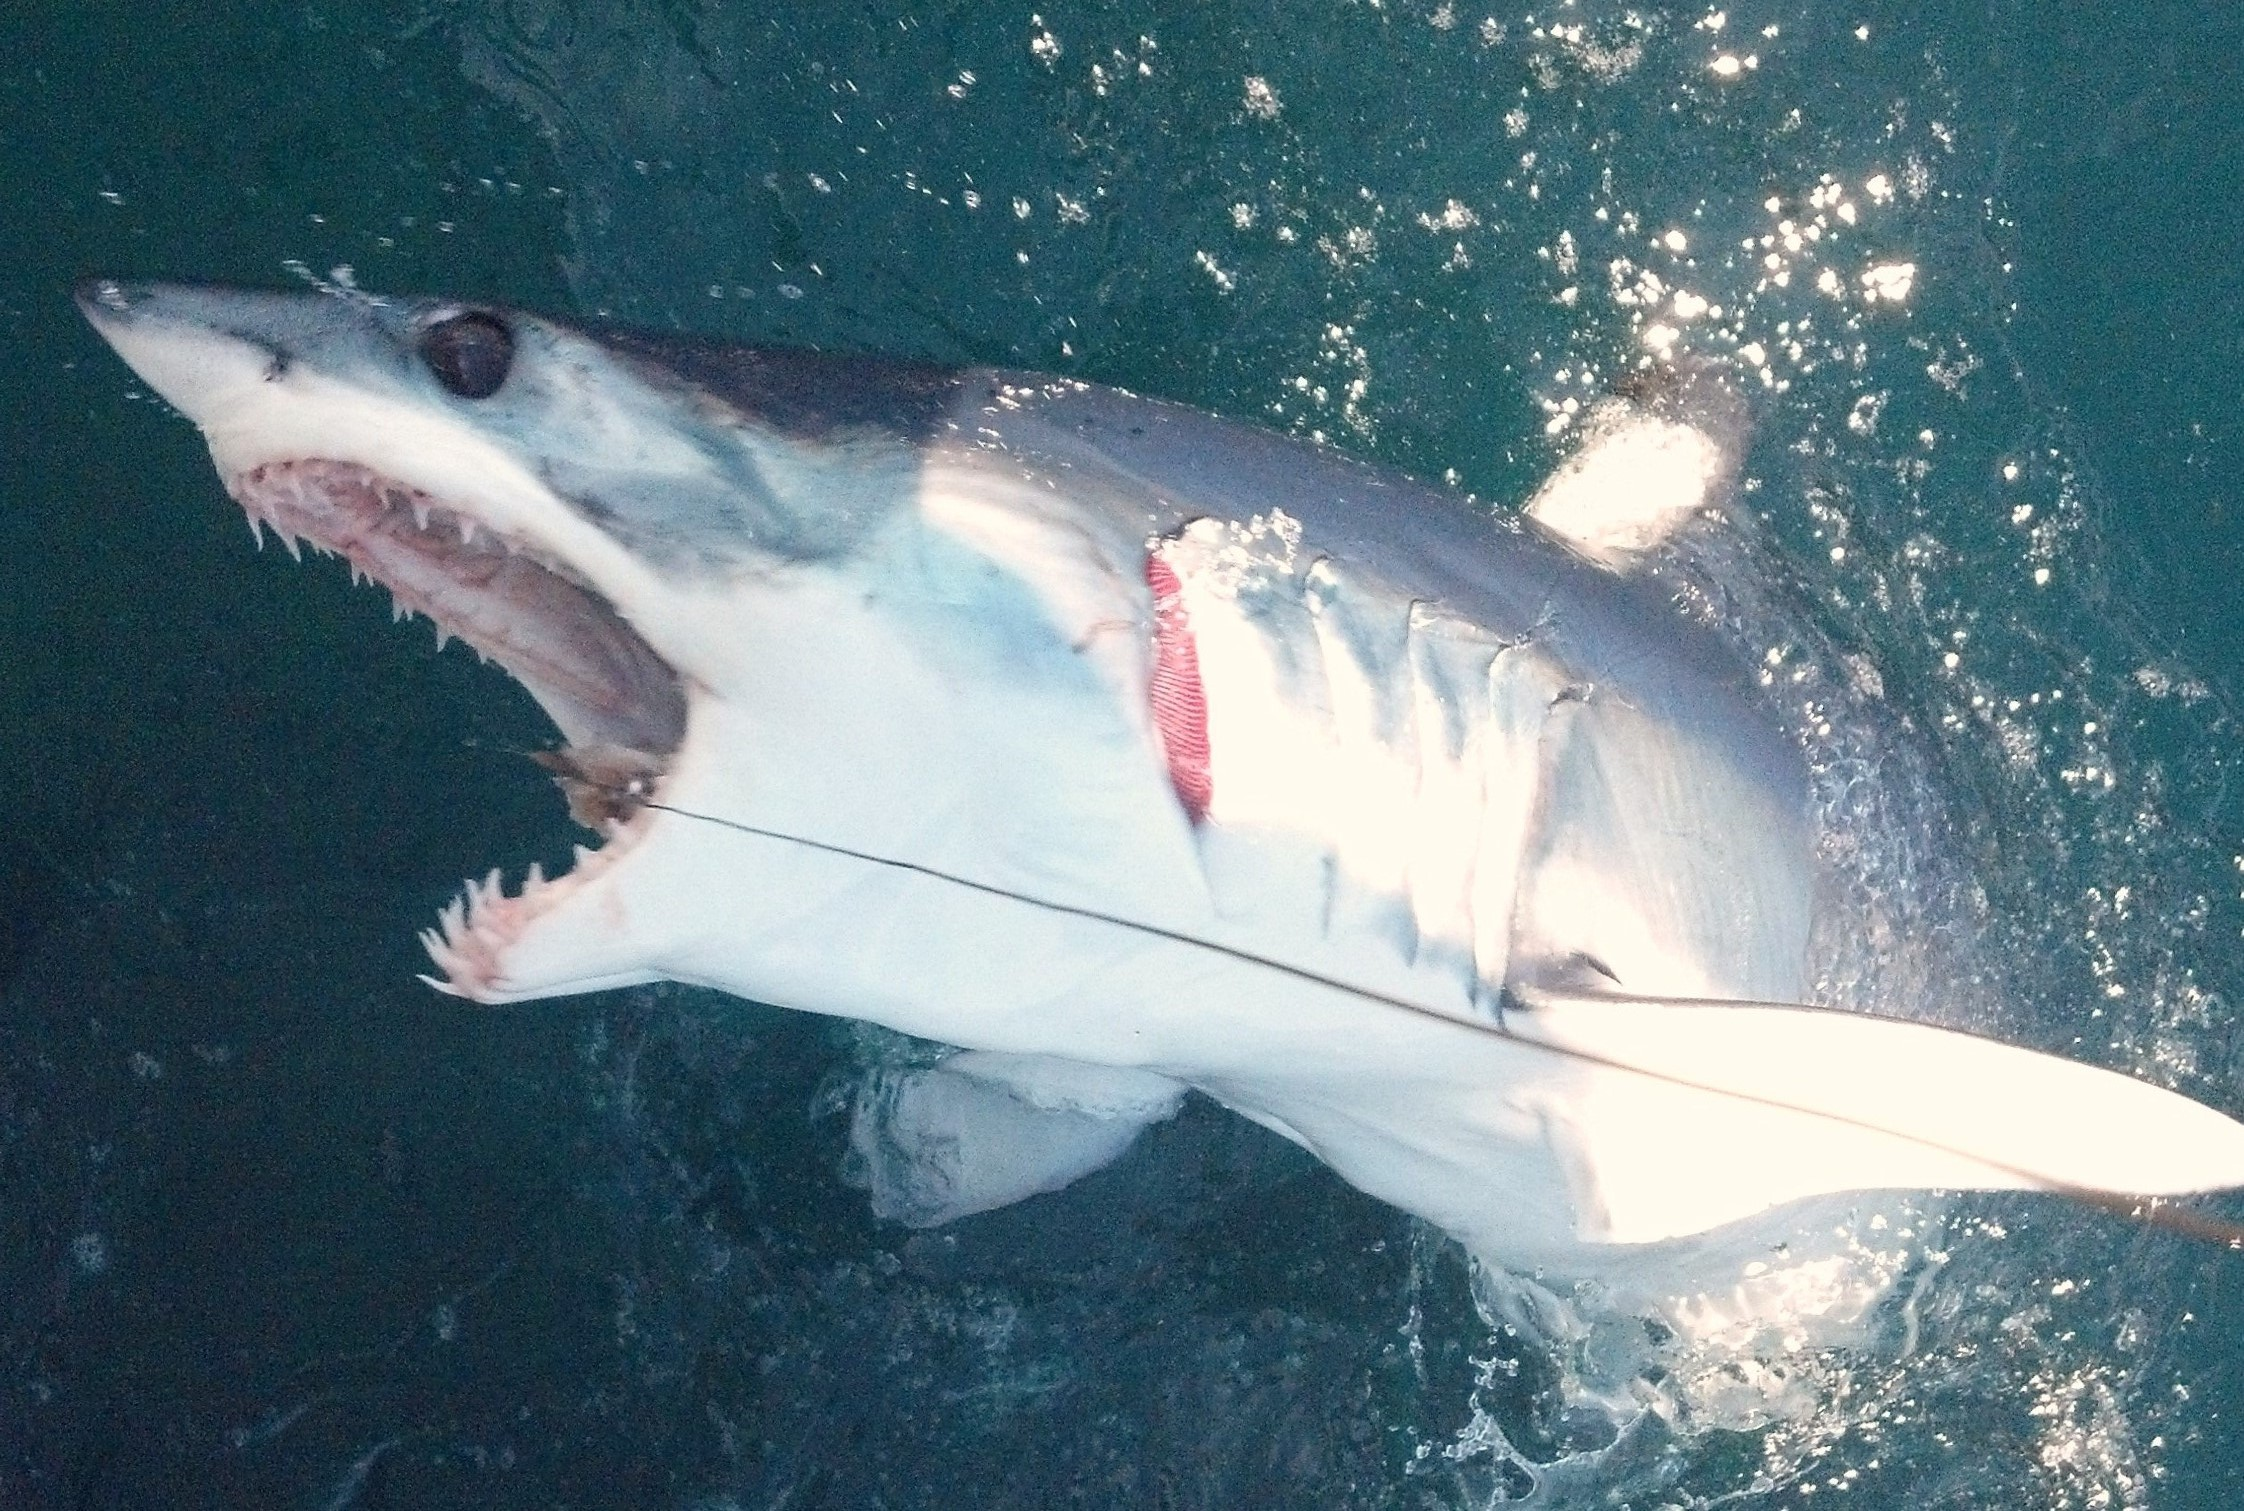 Fishing in new jersey with blue chip sportfishing charters for What saltwater fish are in season now